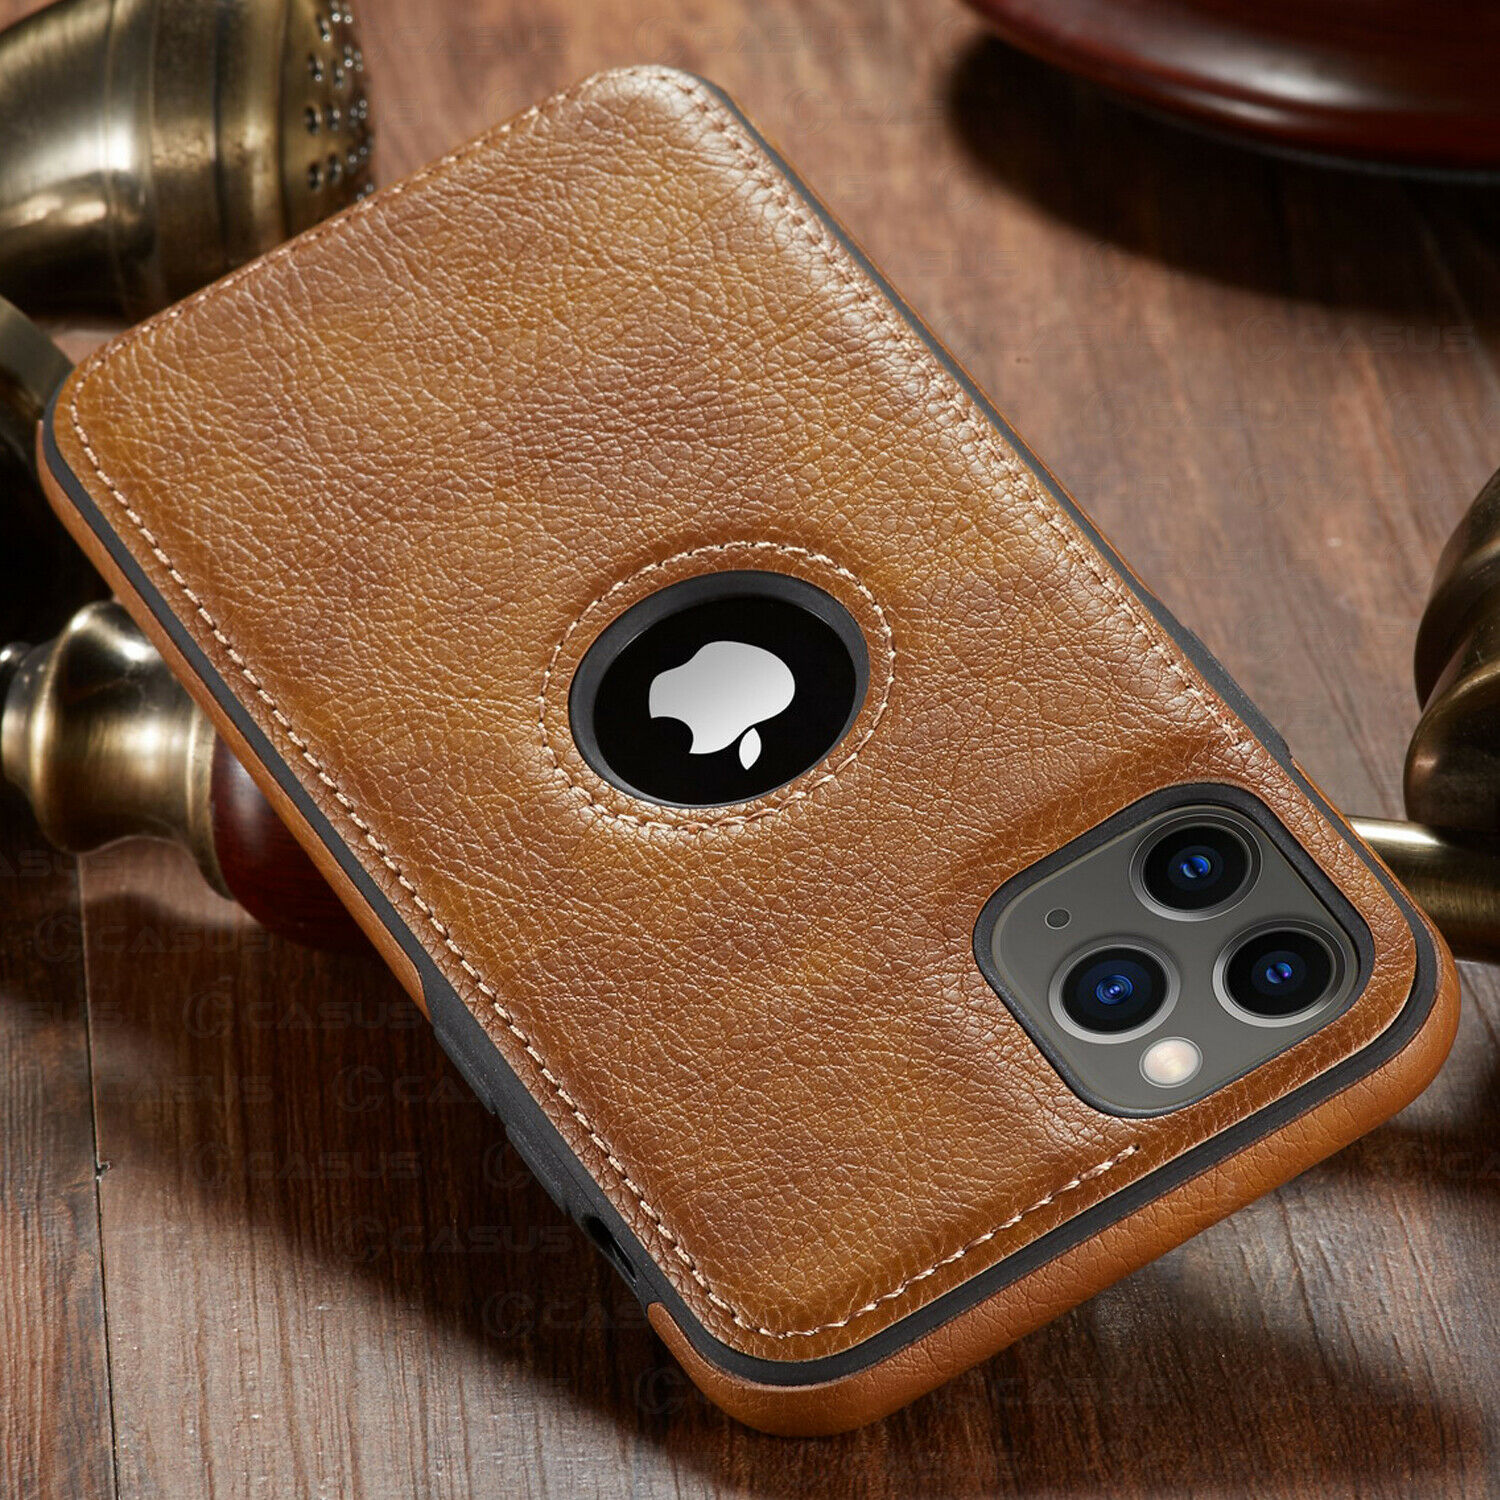 Voor Iphone 11 11 Pro 11 Pro Max Case Luxe Leather Stiksels Case Cover Voor Iphone 12 Pro Max xr X 8 7 6 6S Plus Case 2